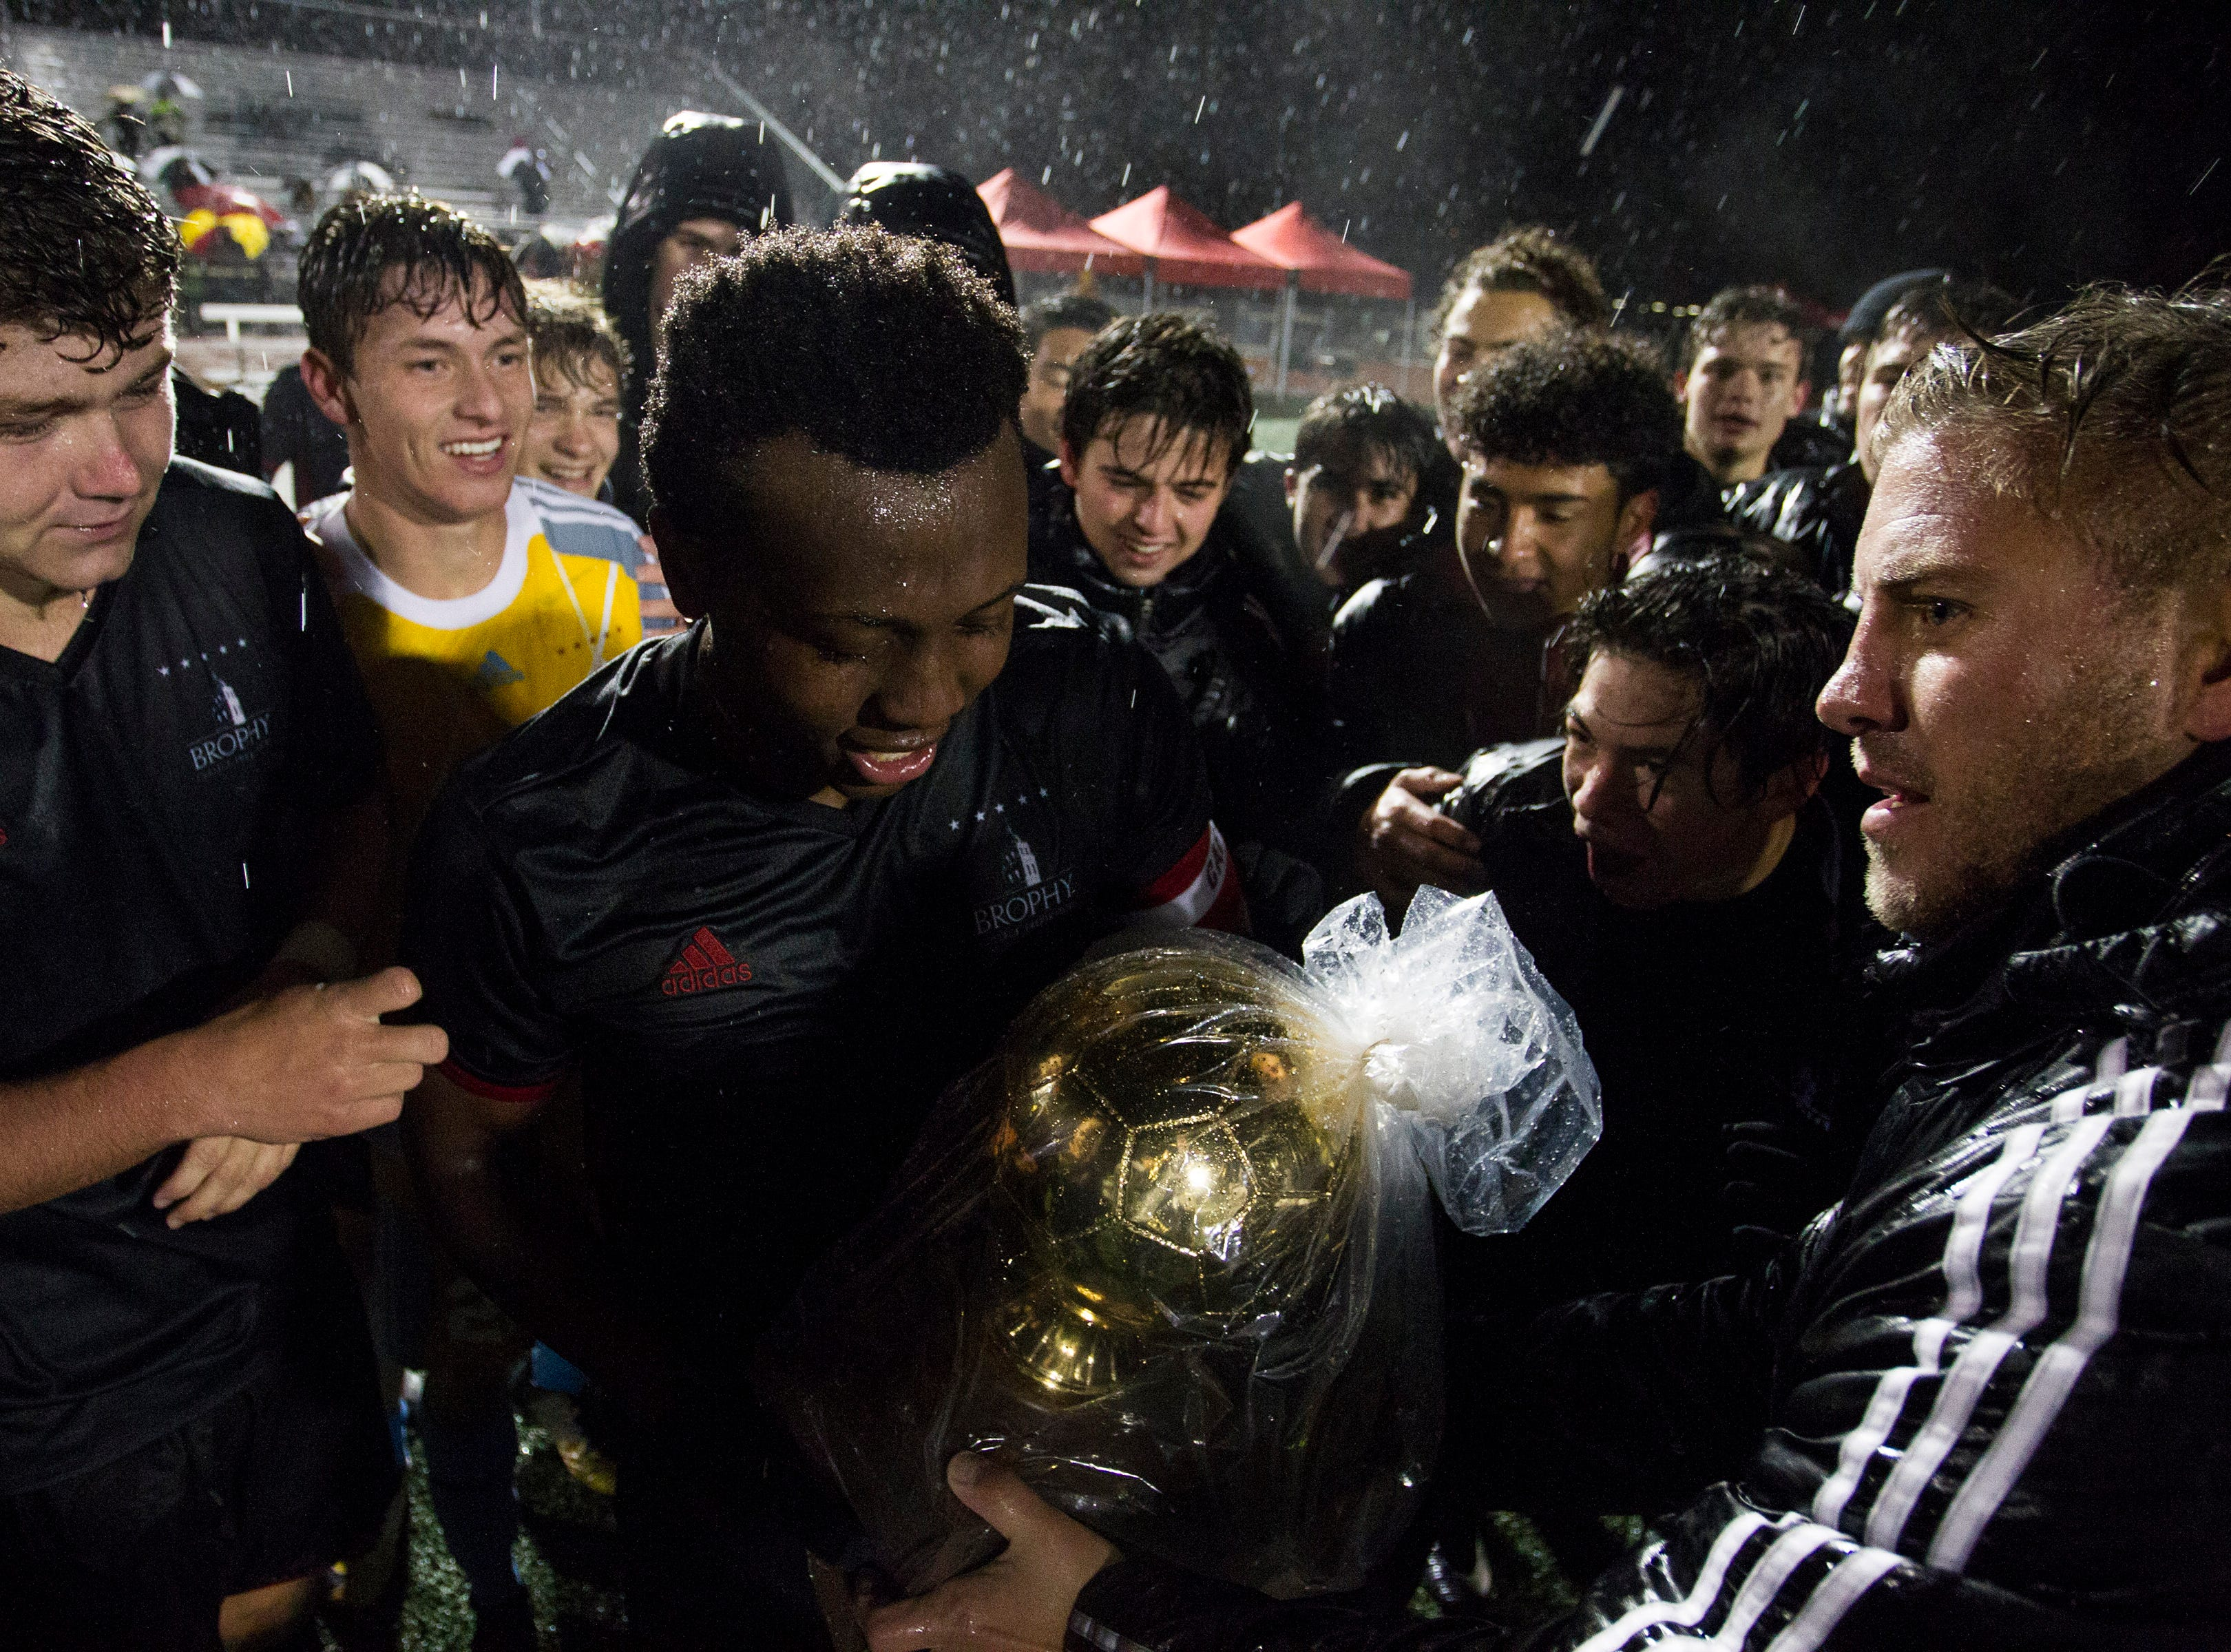 Brophy head coach Paul Allen hands over the gold ball to his captain Deric Hall after they won the 6A State Championship game over Hamilton 3-0 in Gilbert, Thursday, Feb 21, 2019.